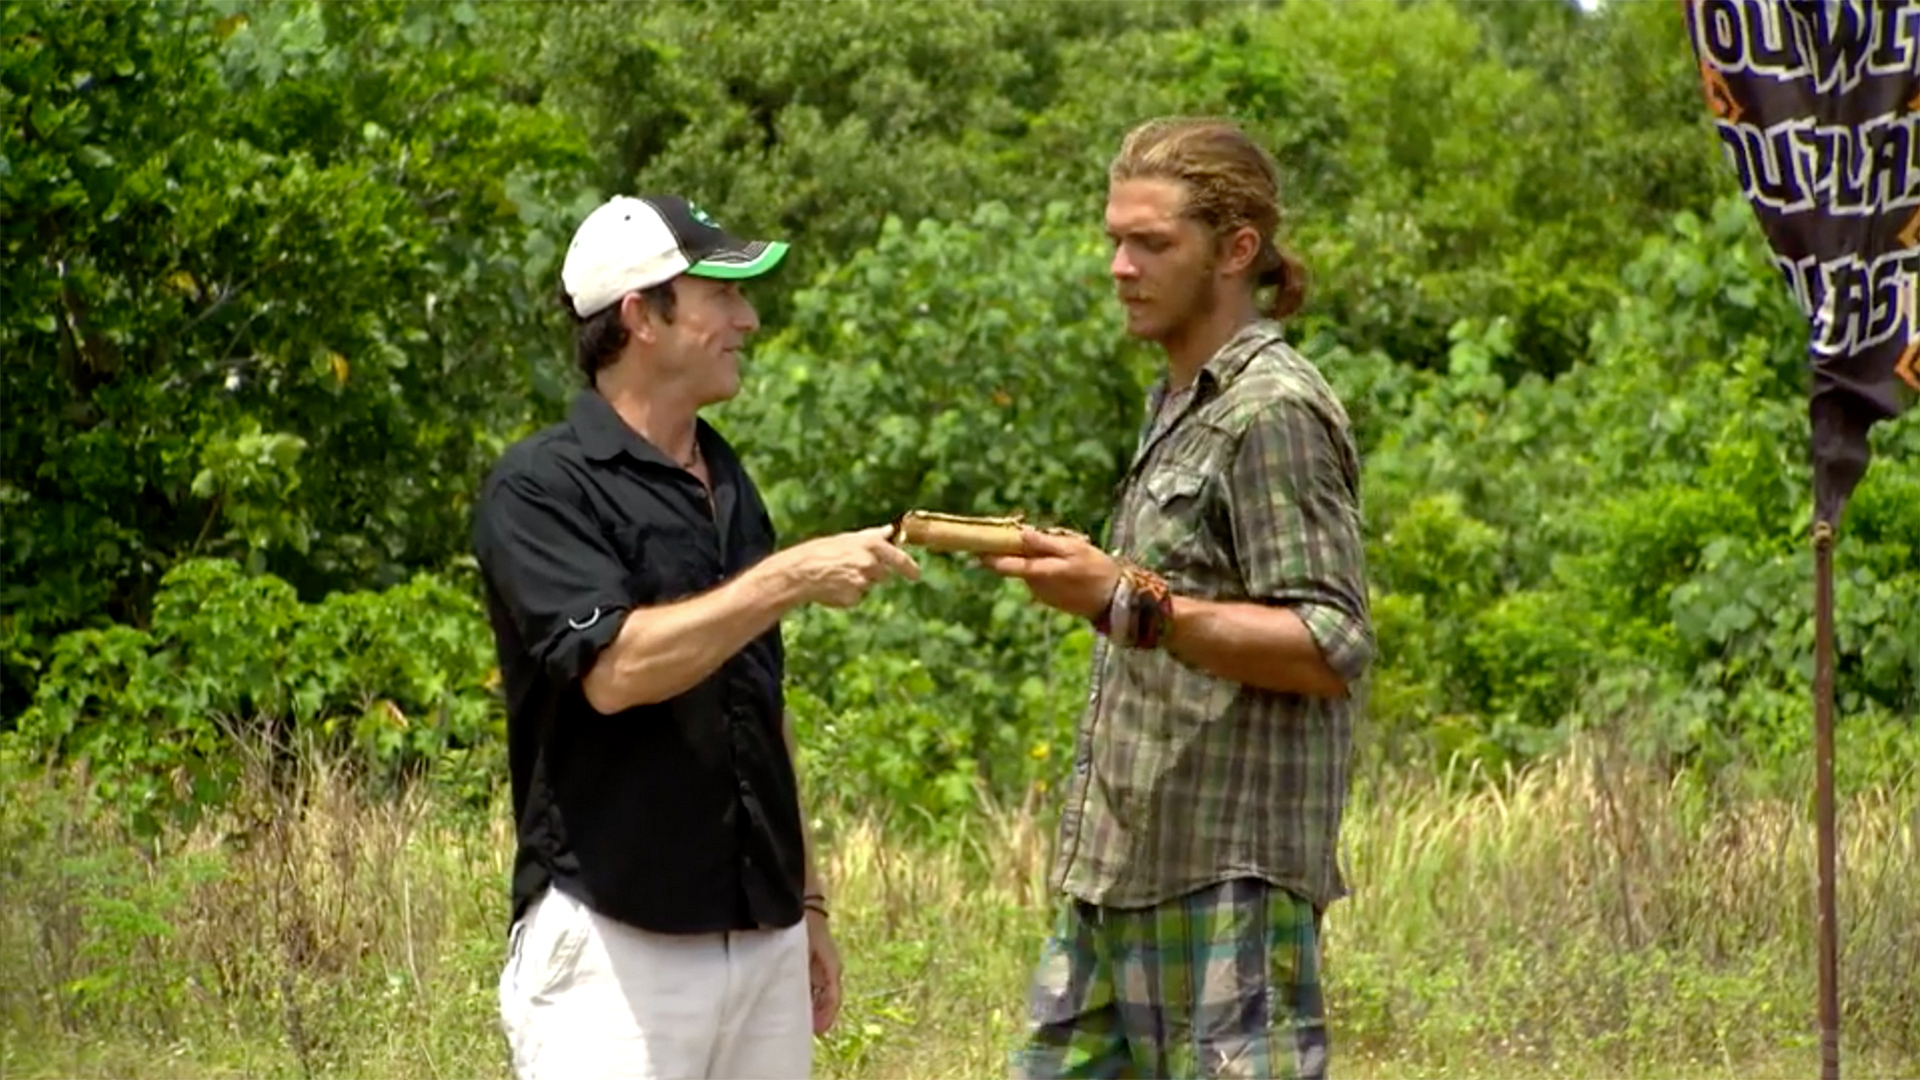 Malcolm Freberg's Advantage from Survivor: Philippines